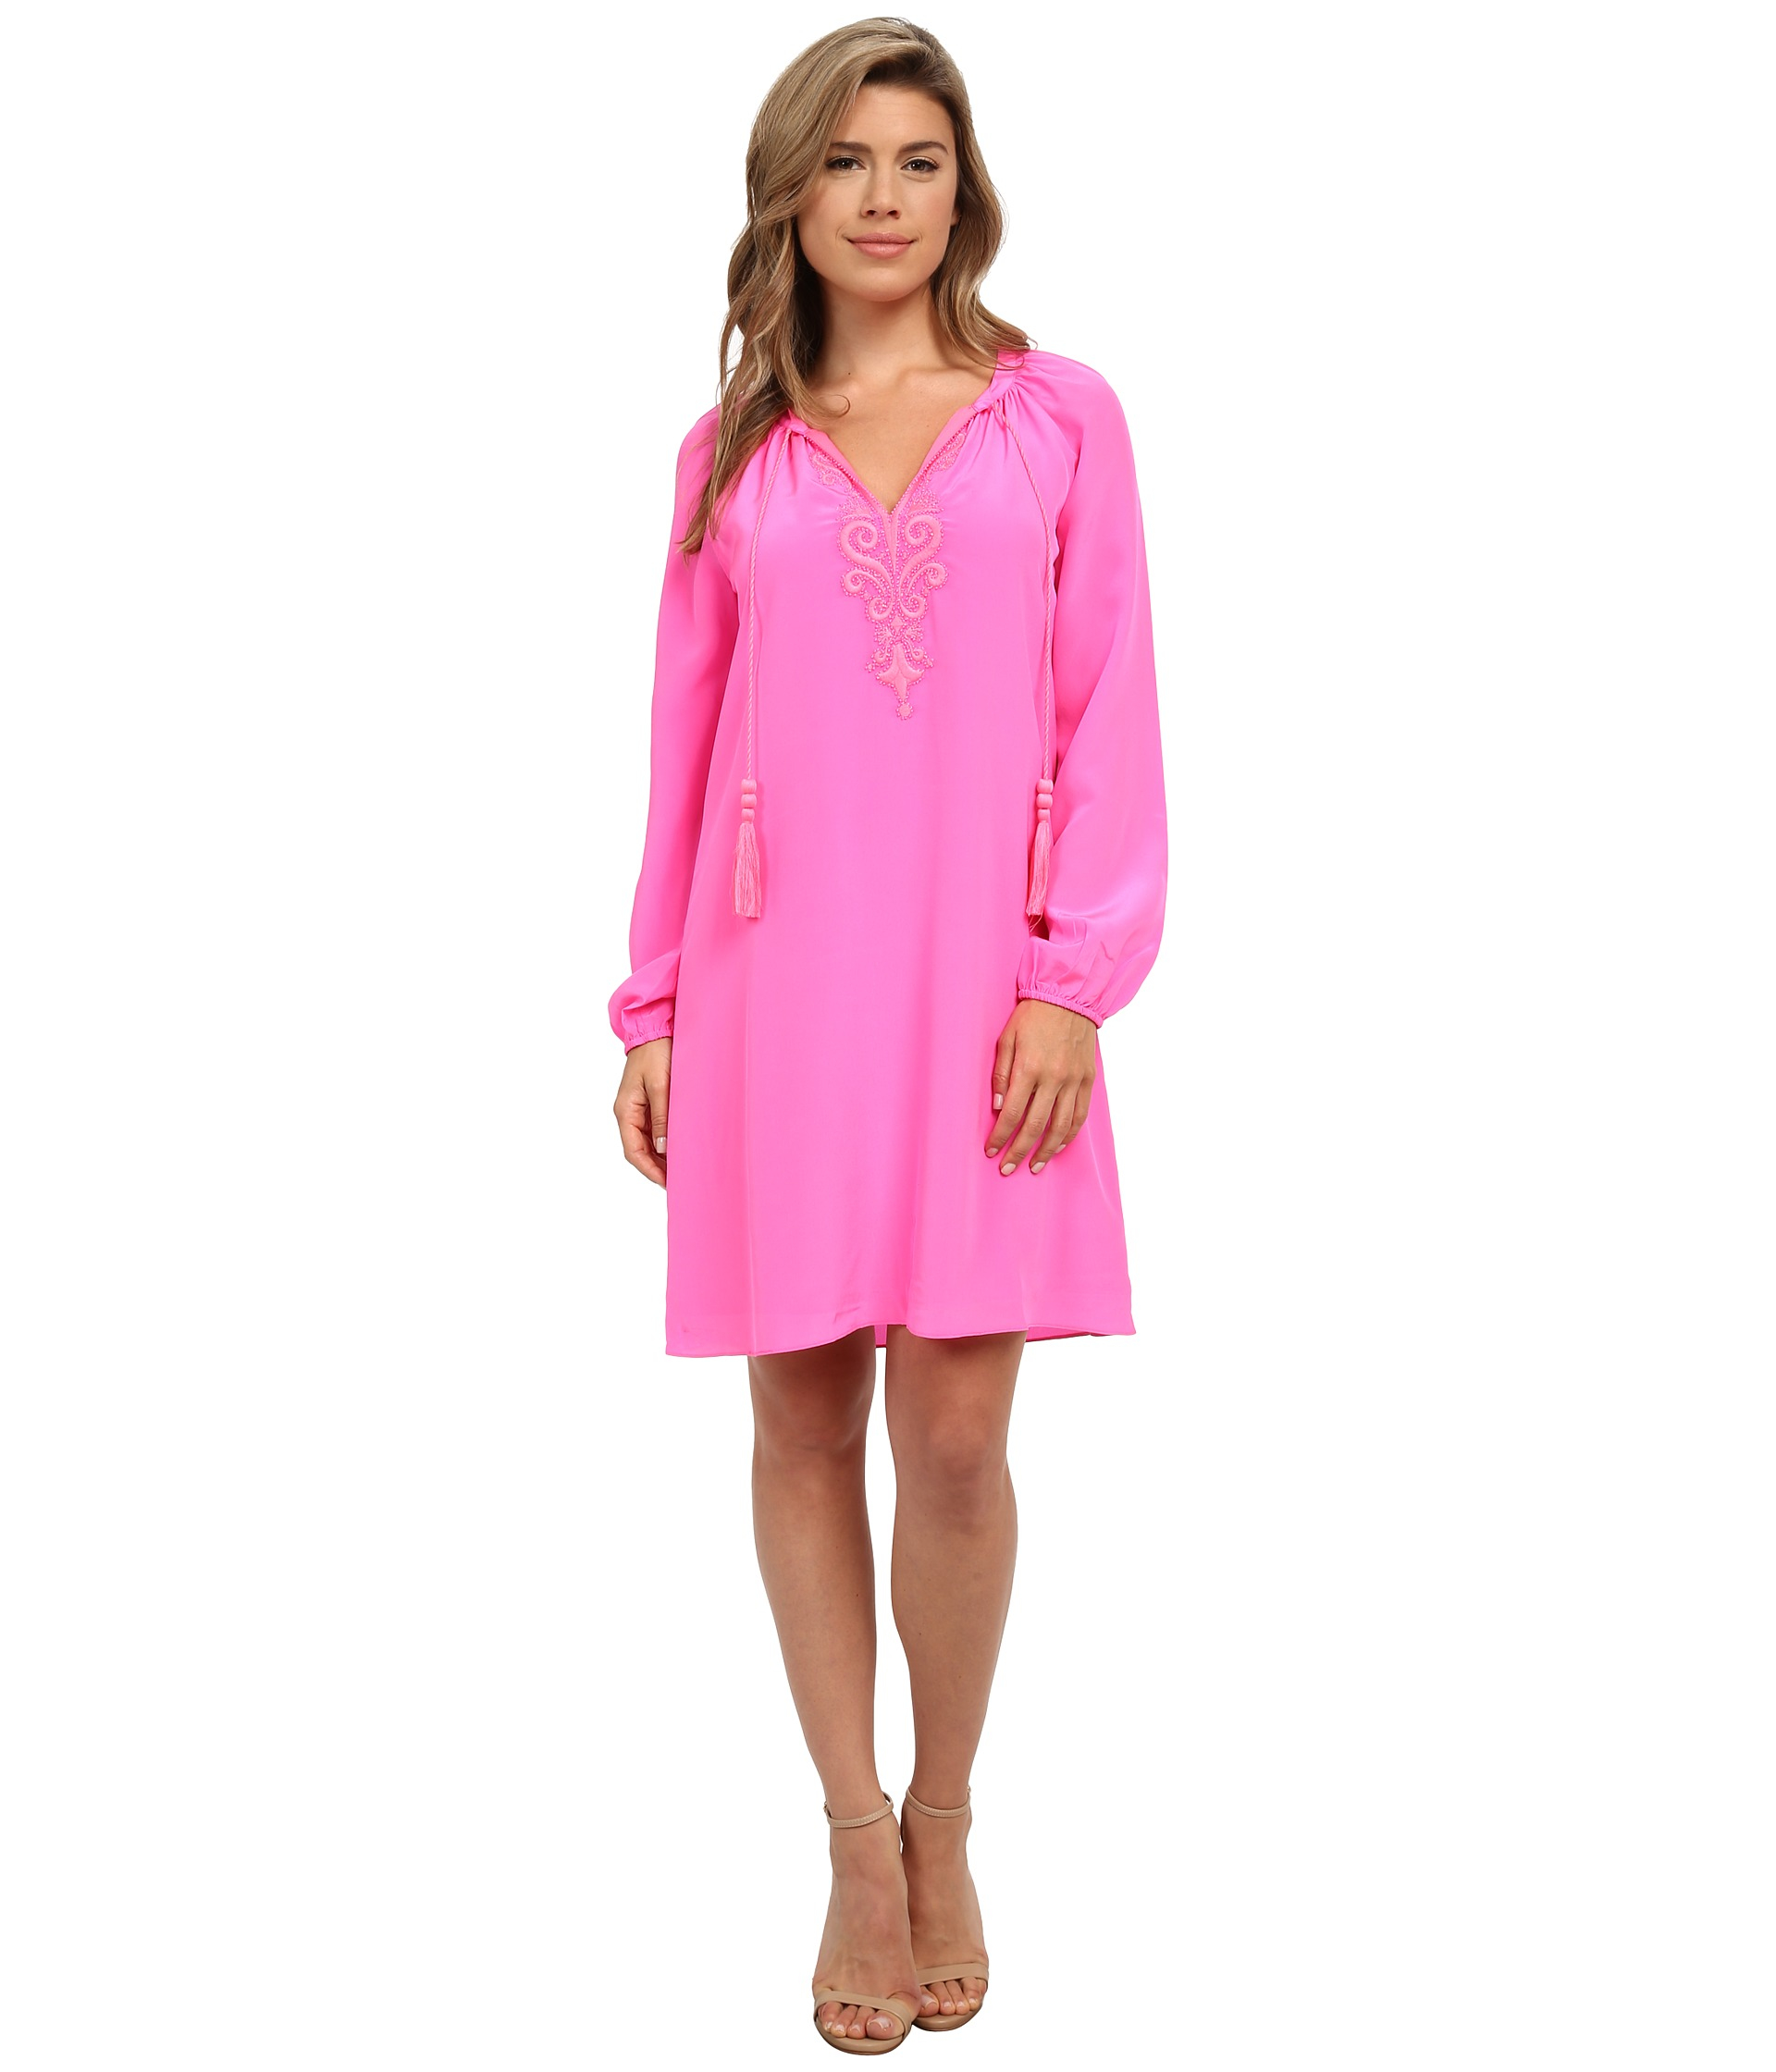 0f9e443db18 Lilly Pulitzer Roslyn Tunic Dress in Pink - Lyst